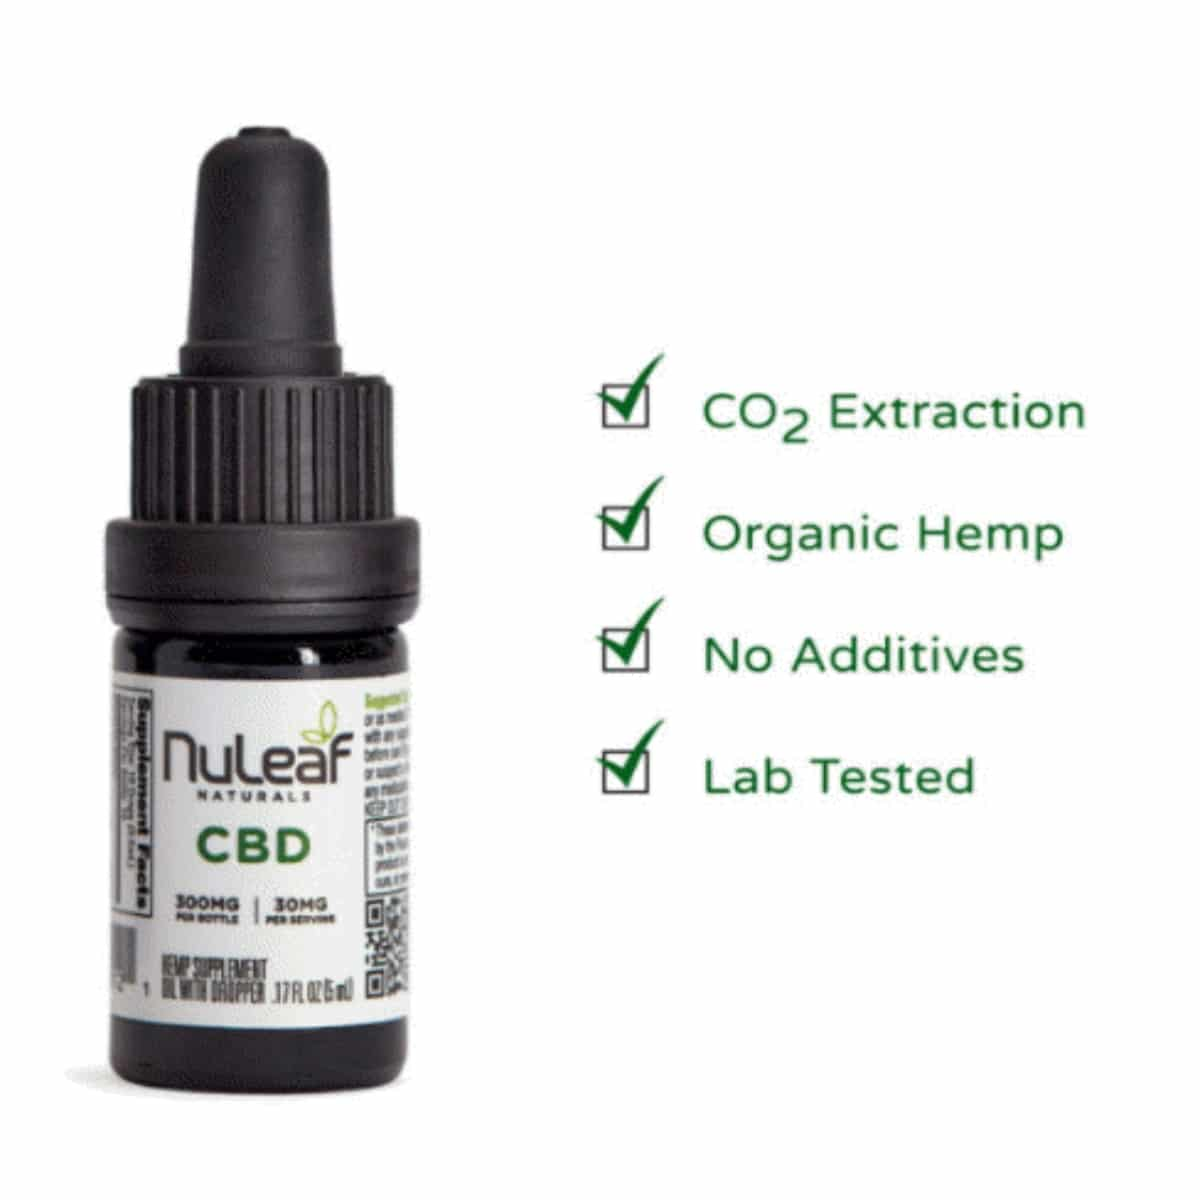 NuLeaf Naturals 300mg Full Spectrum Hemp CBD Oil